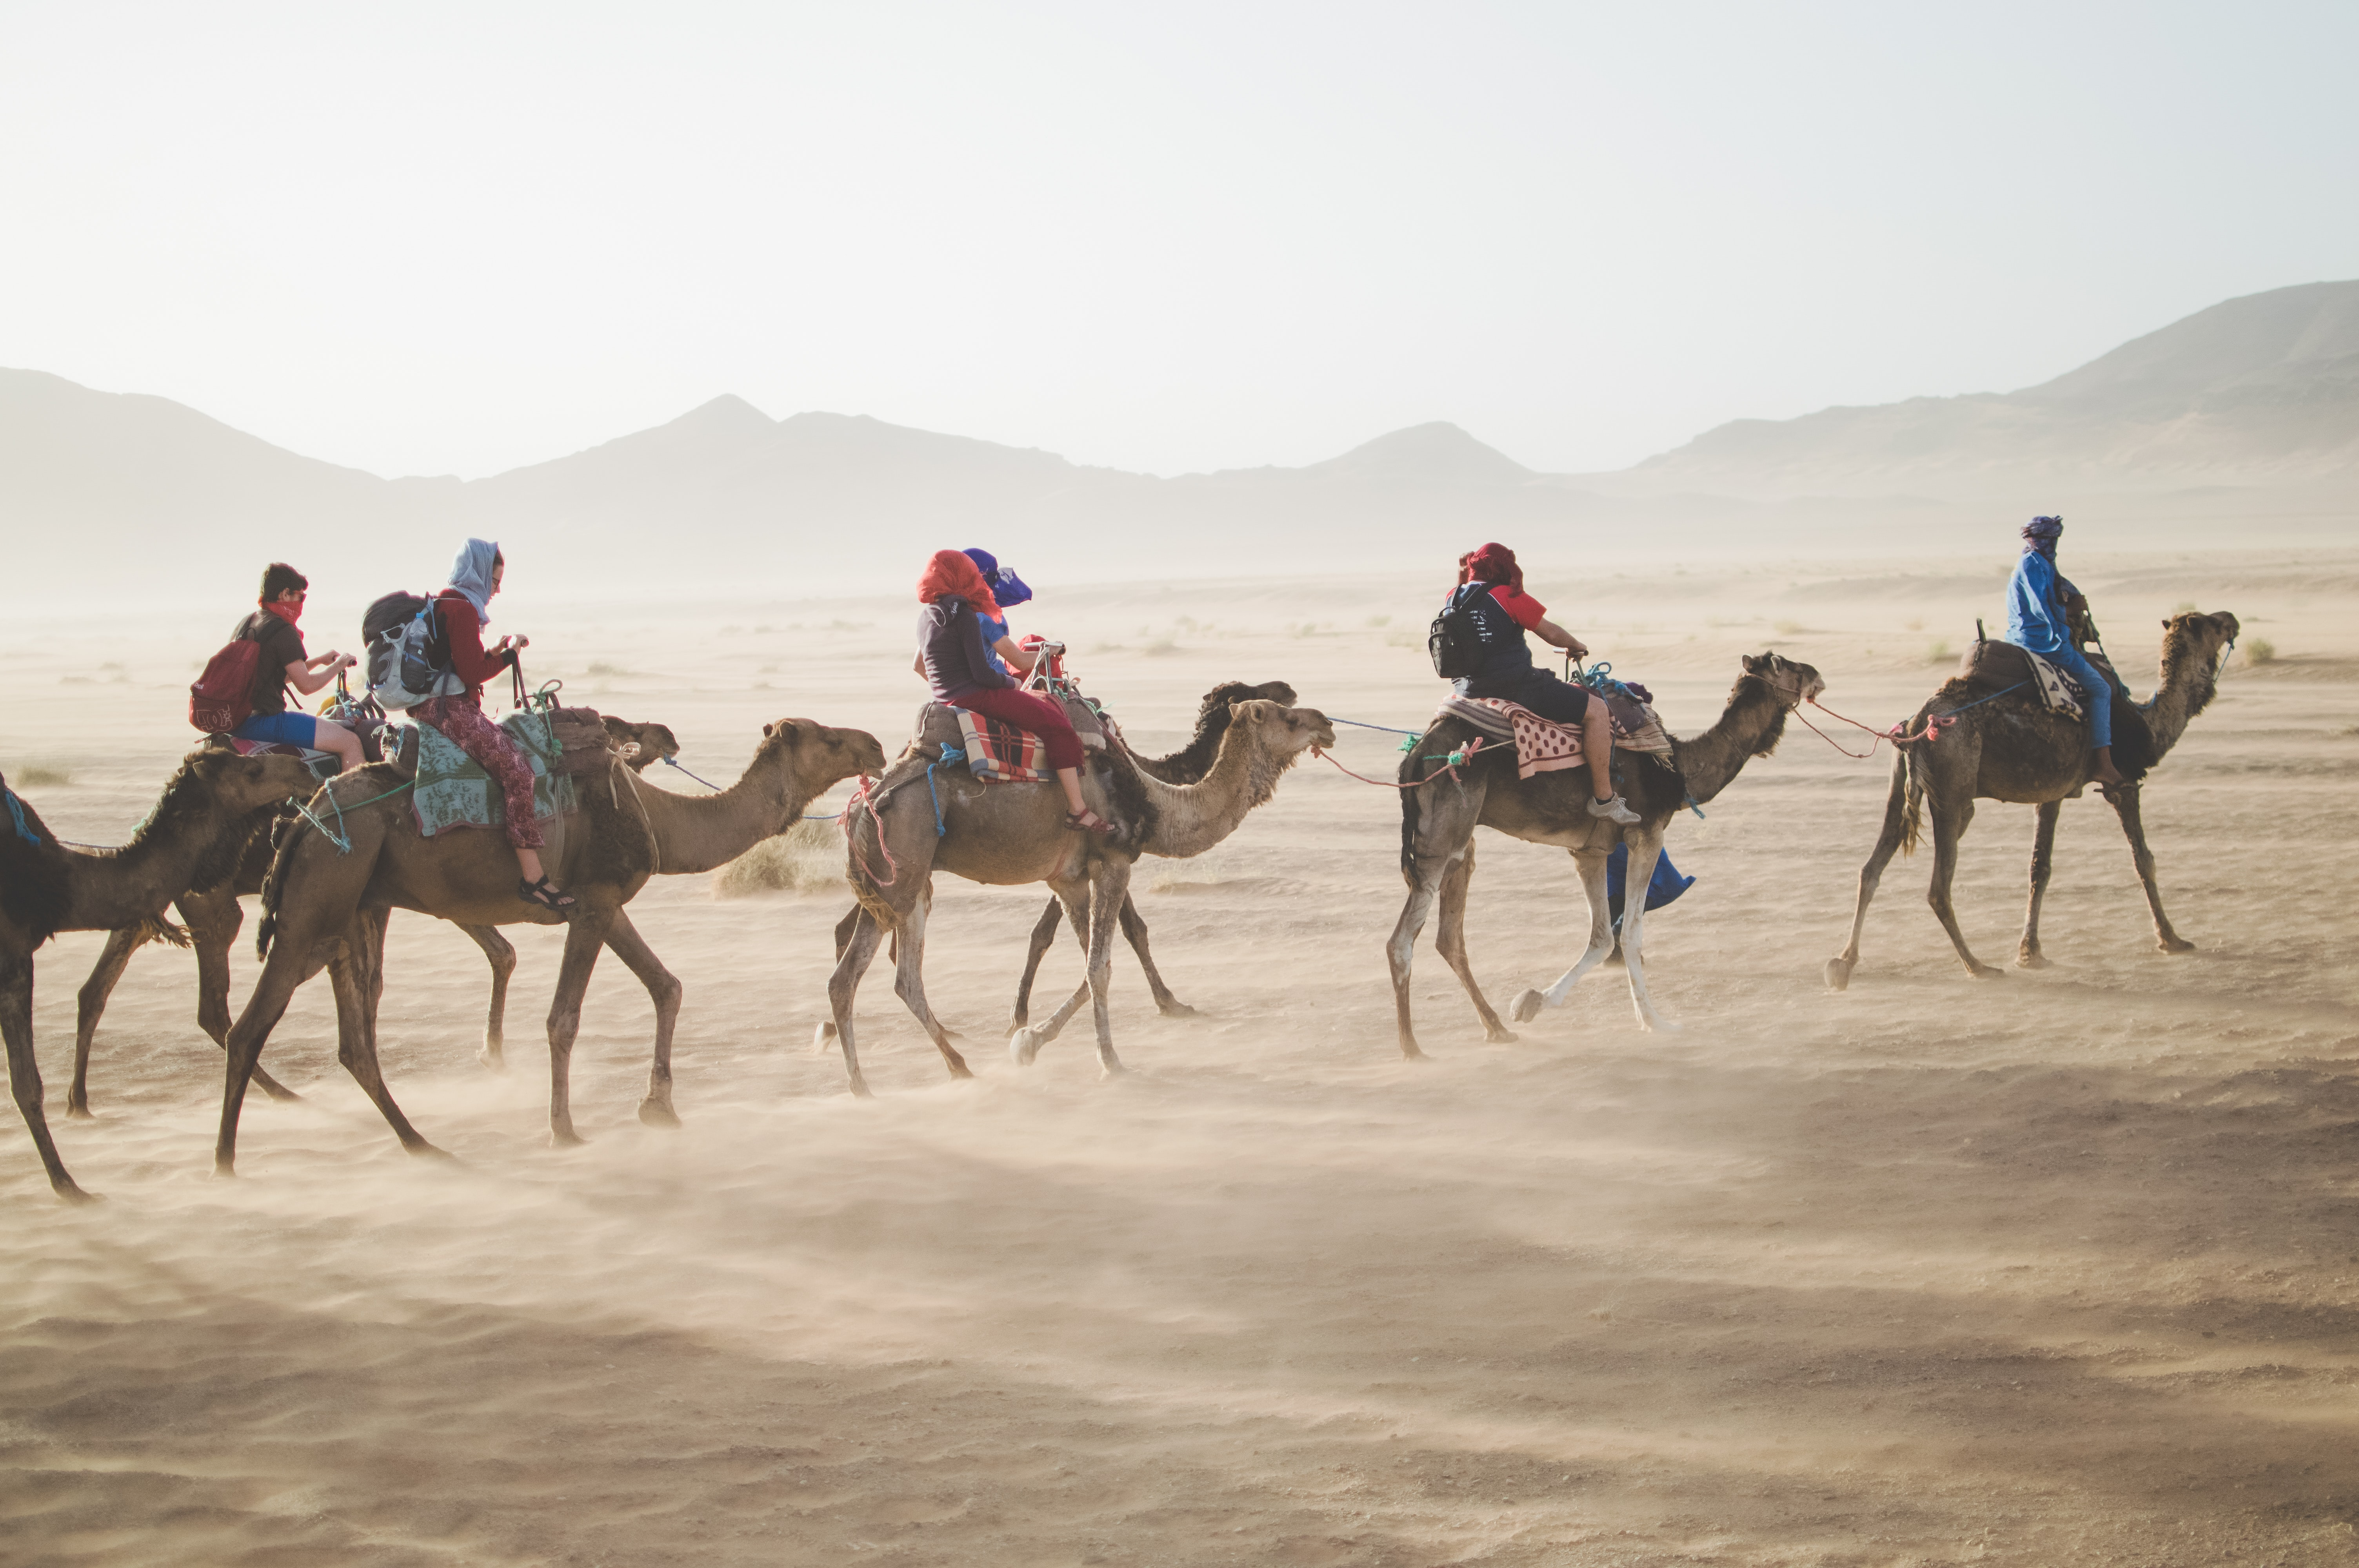 Camels crossing the dessert